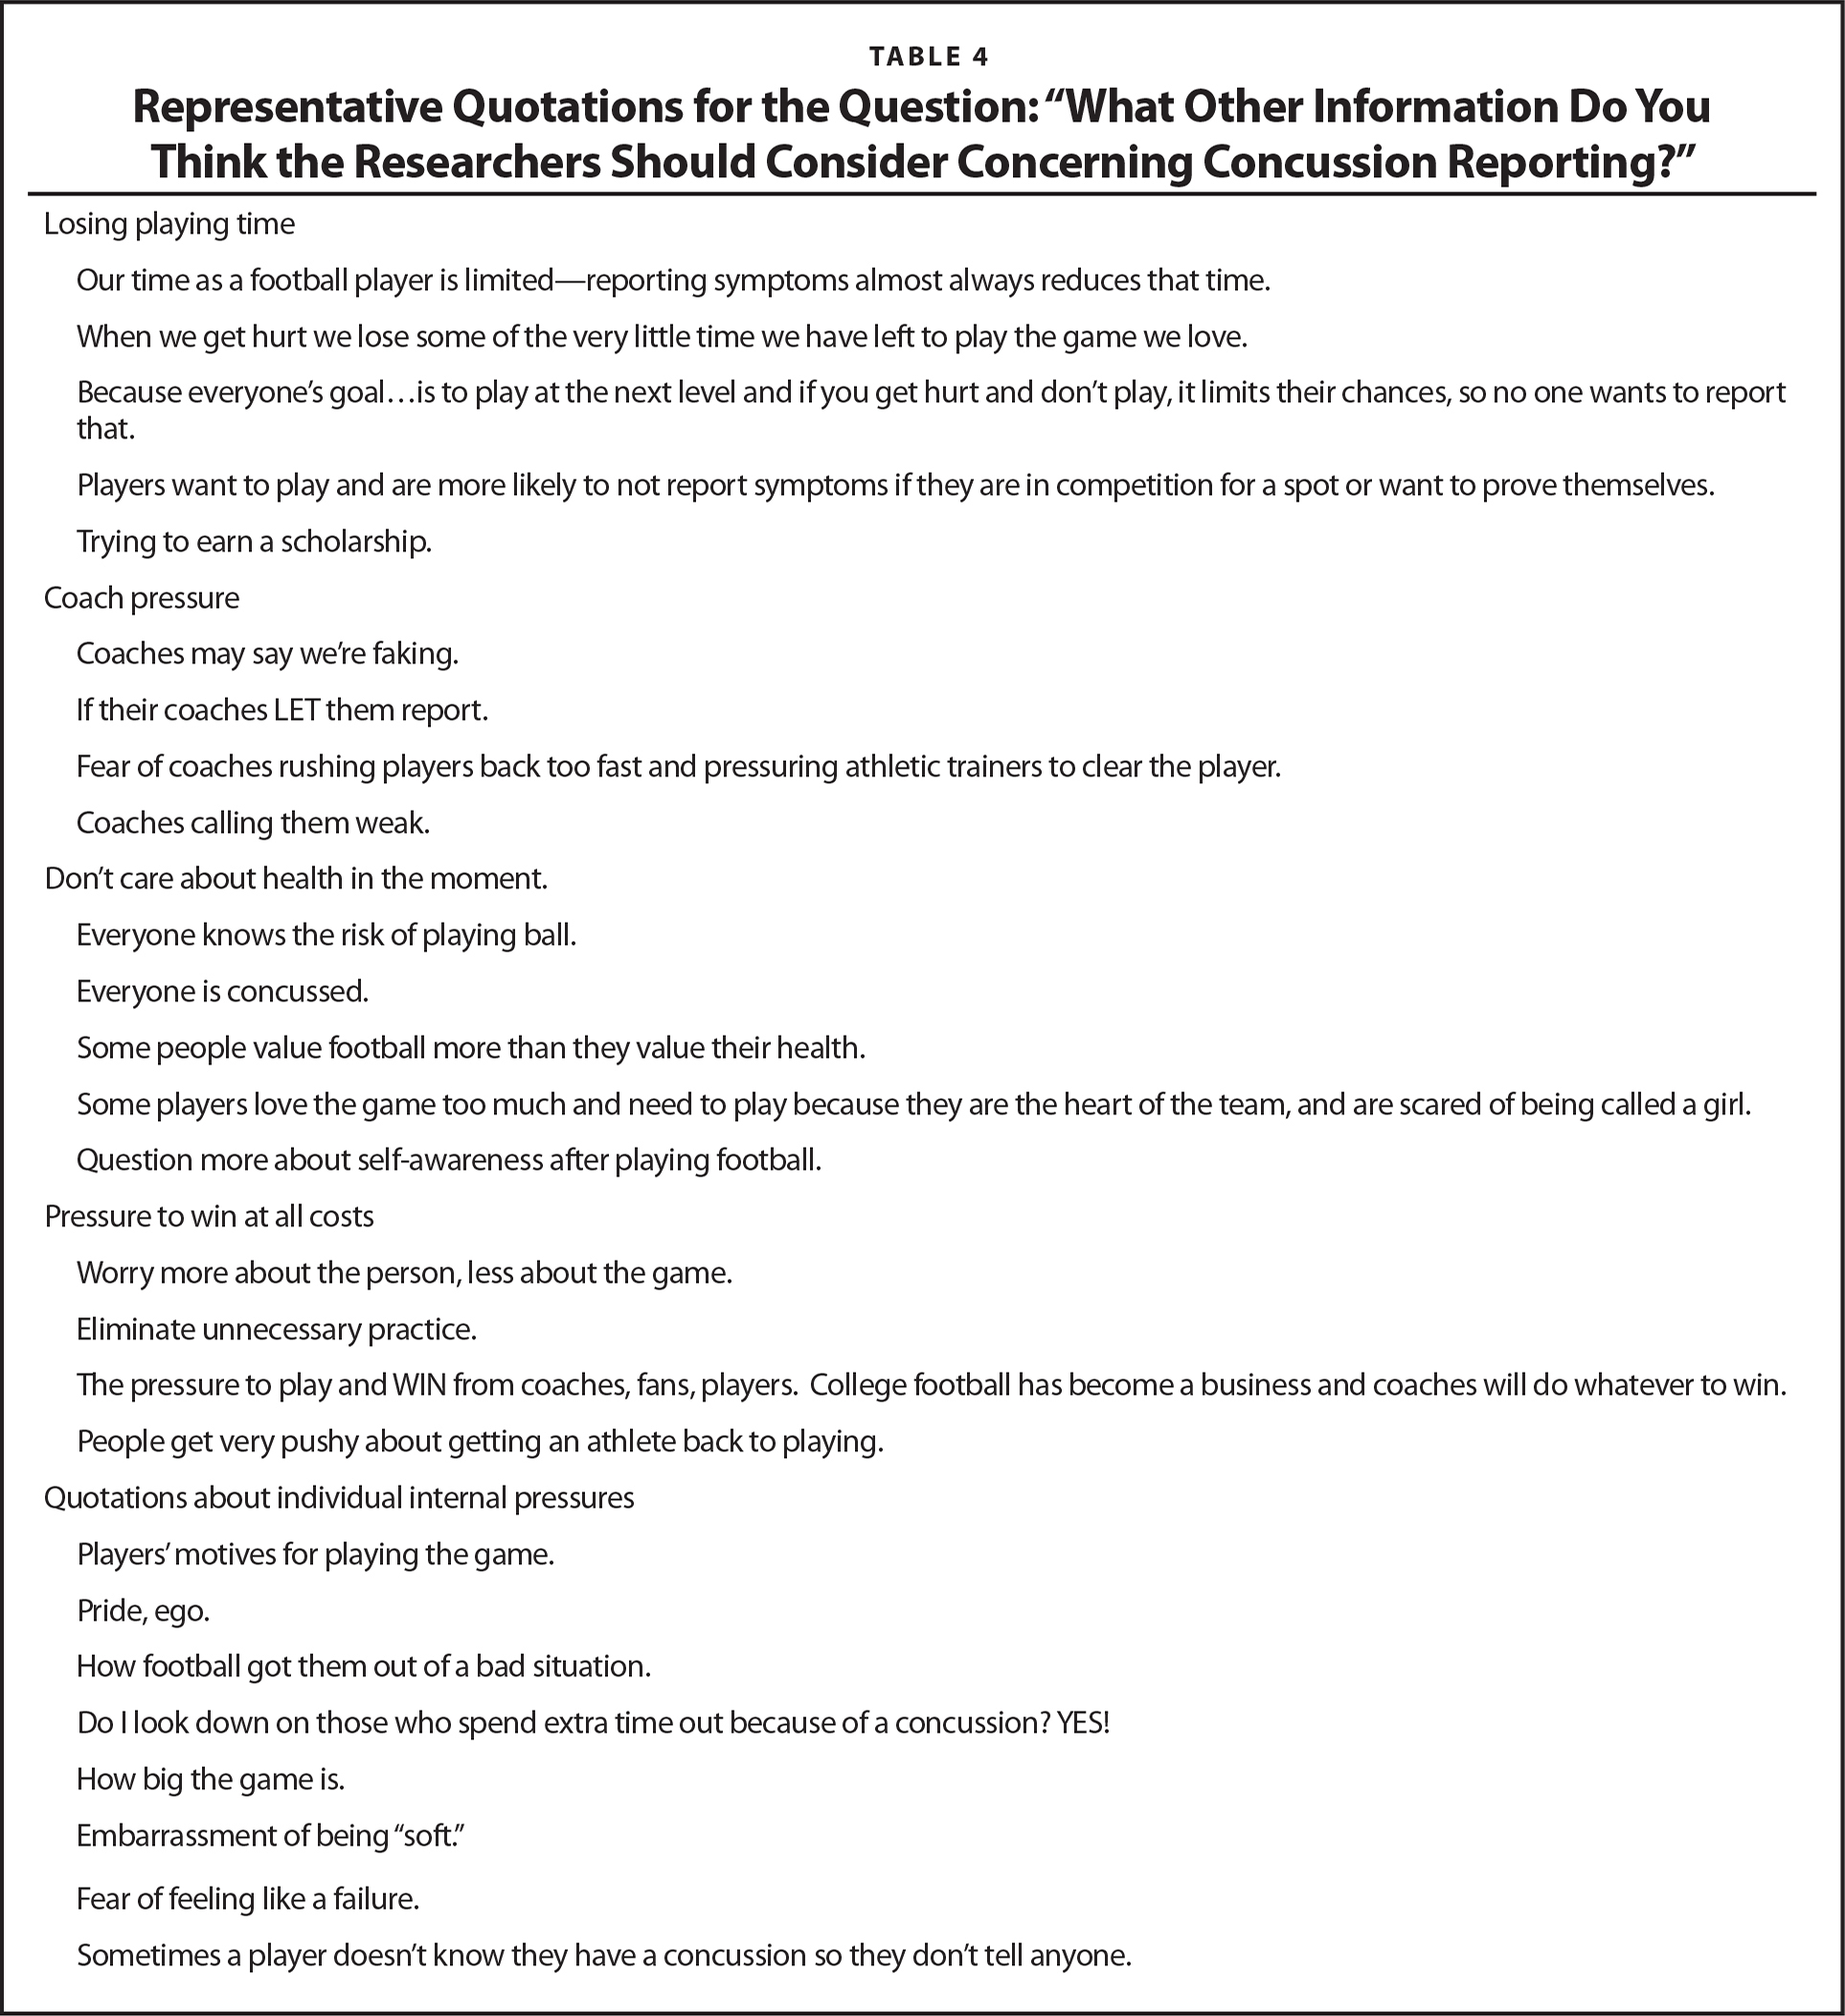 """Representative Quotations for the Question: """"What Other Information Do You Think the Researchers Should Consider Concerning Concussion Reporting?"""""""